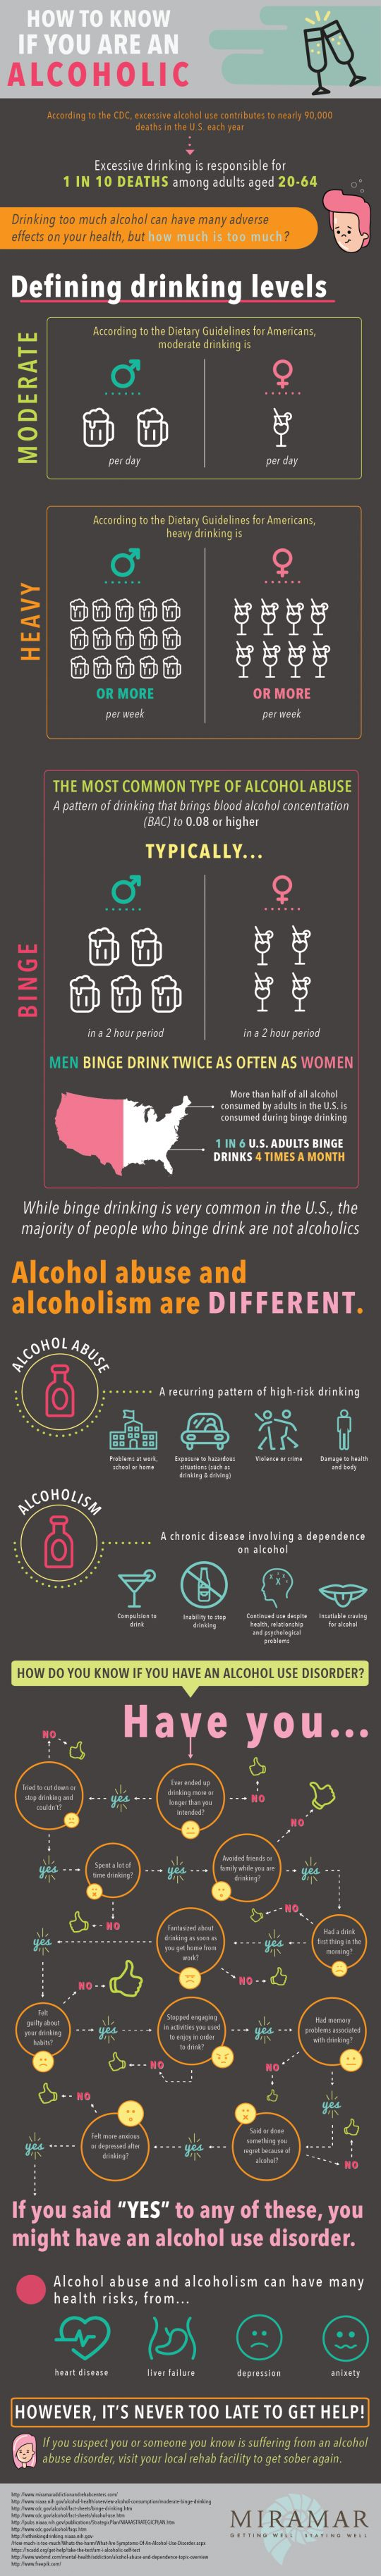 Warning Signs Of Alcoholism Vs Alcohol Abuse: Excessive Drinking May Be  Chronic Disease Or